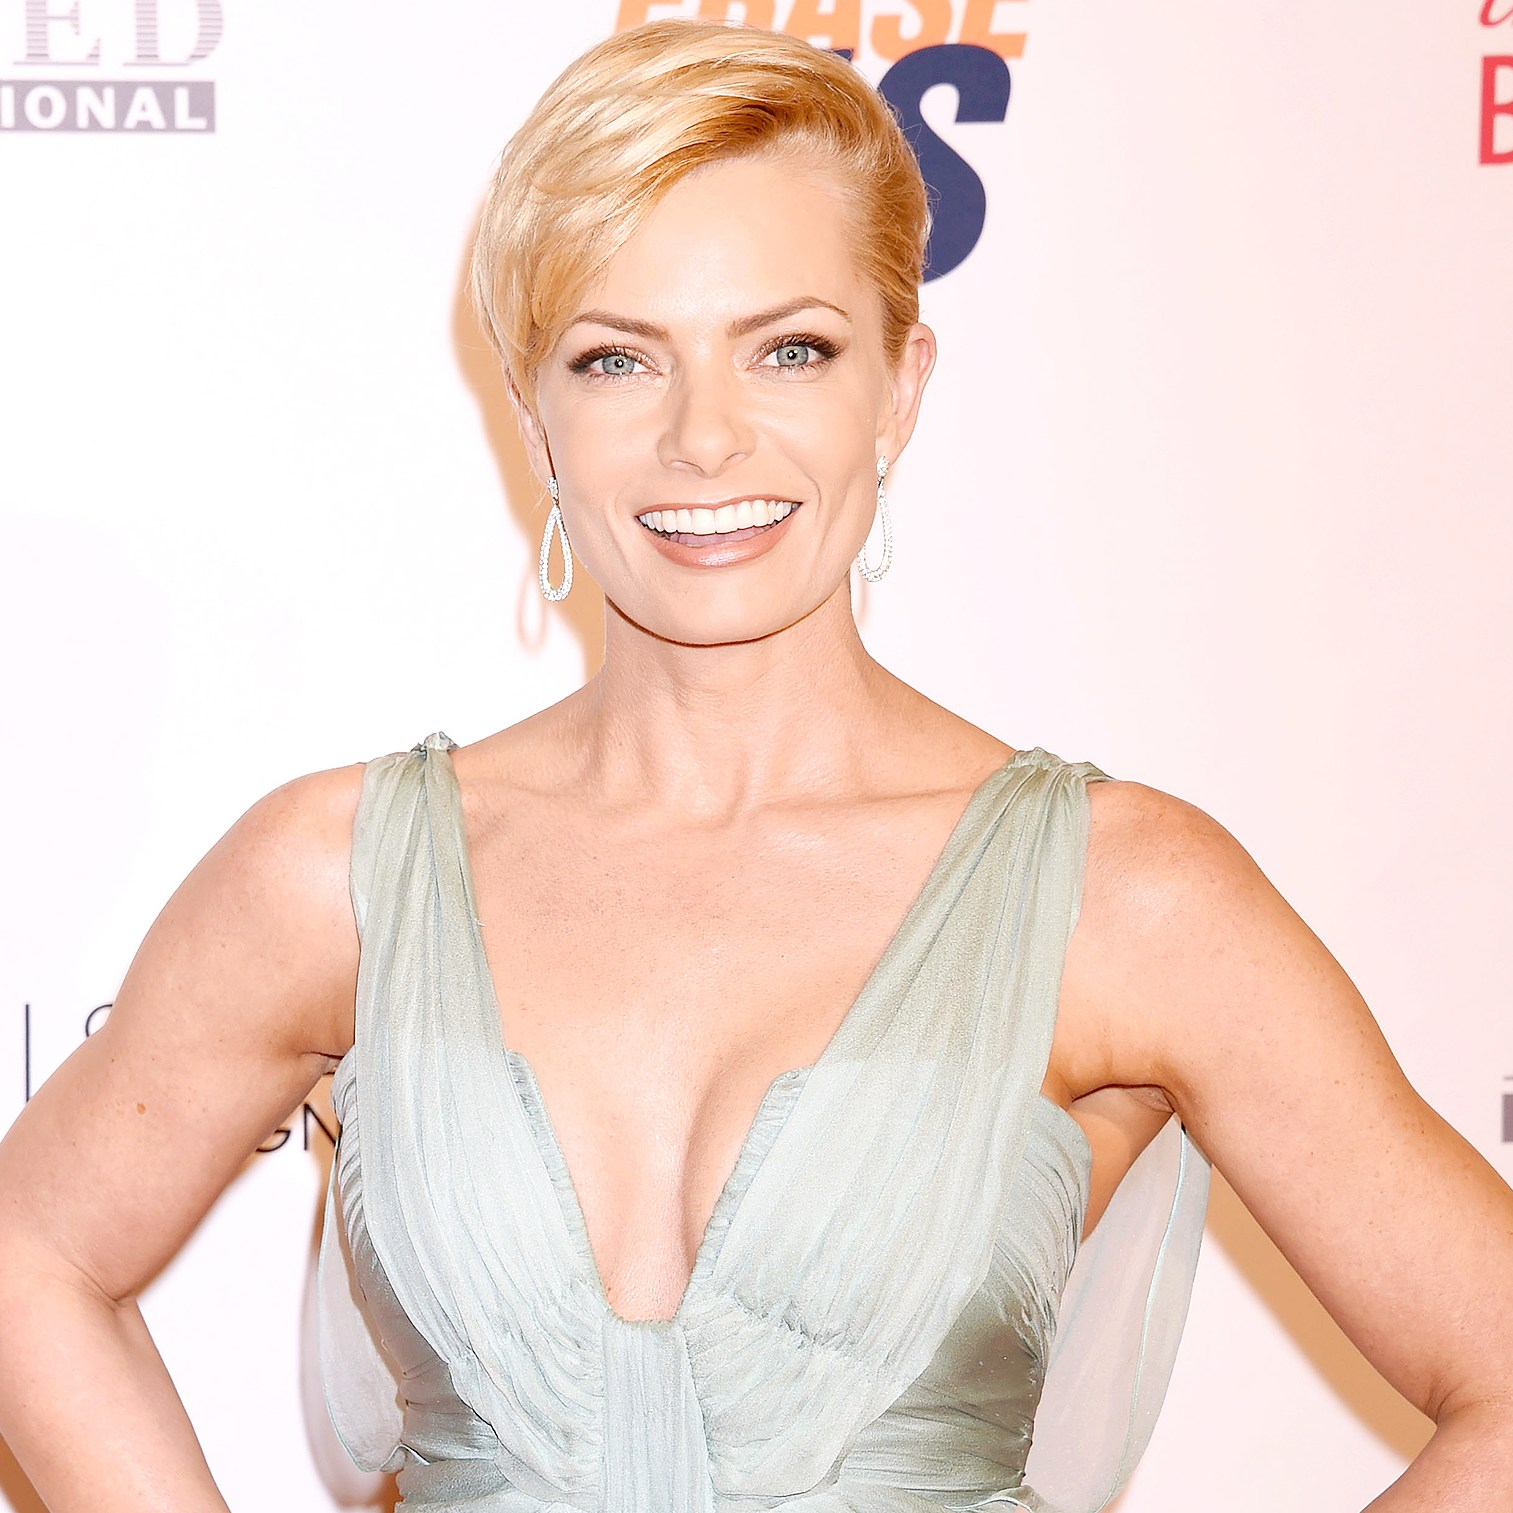 Jaime Pressly attends the 23rd Annual Race To Erase MS Gala at The Beverly Hilton Hotel on April 15, 2016 in Beverly Hills, California.